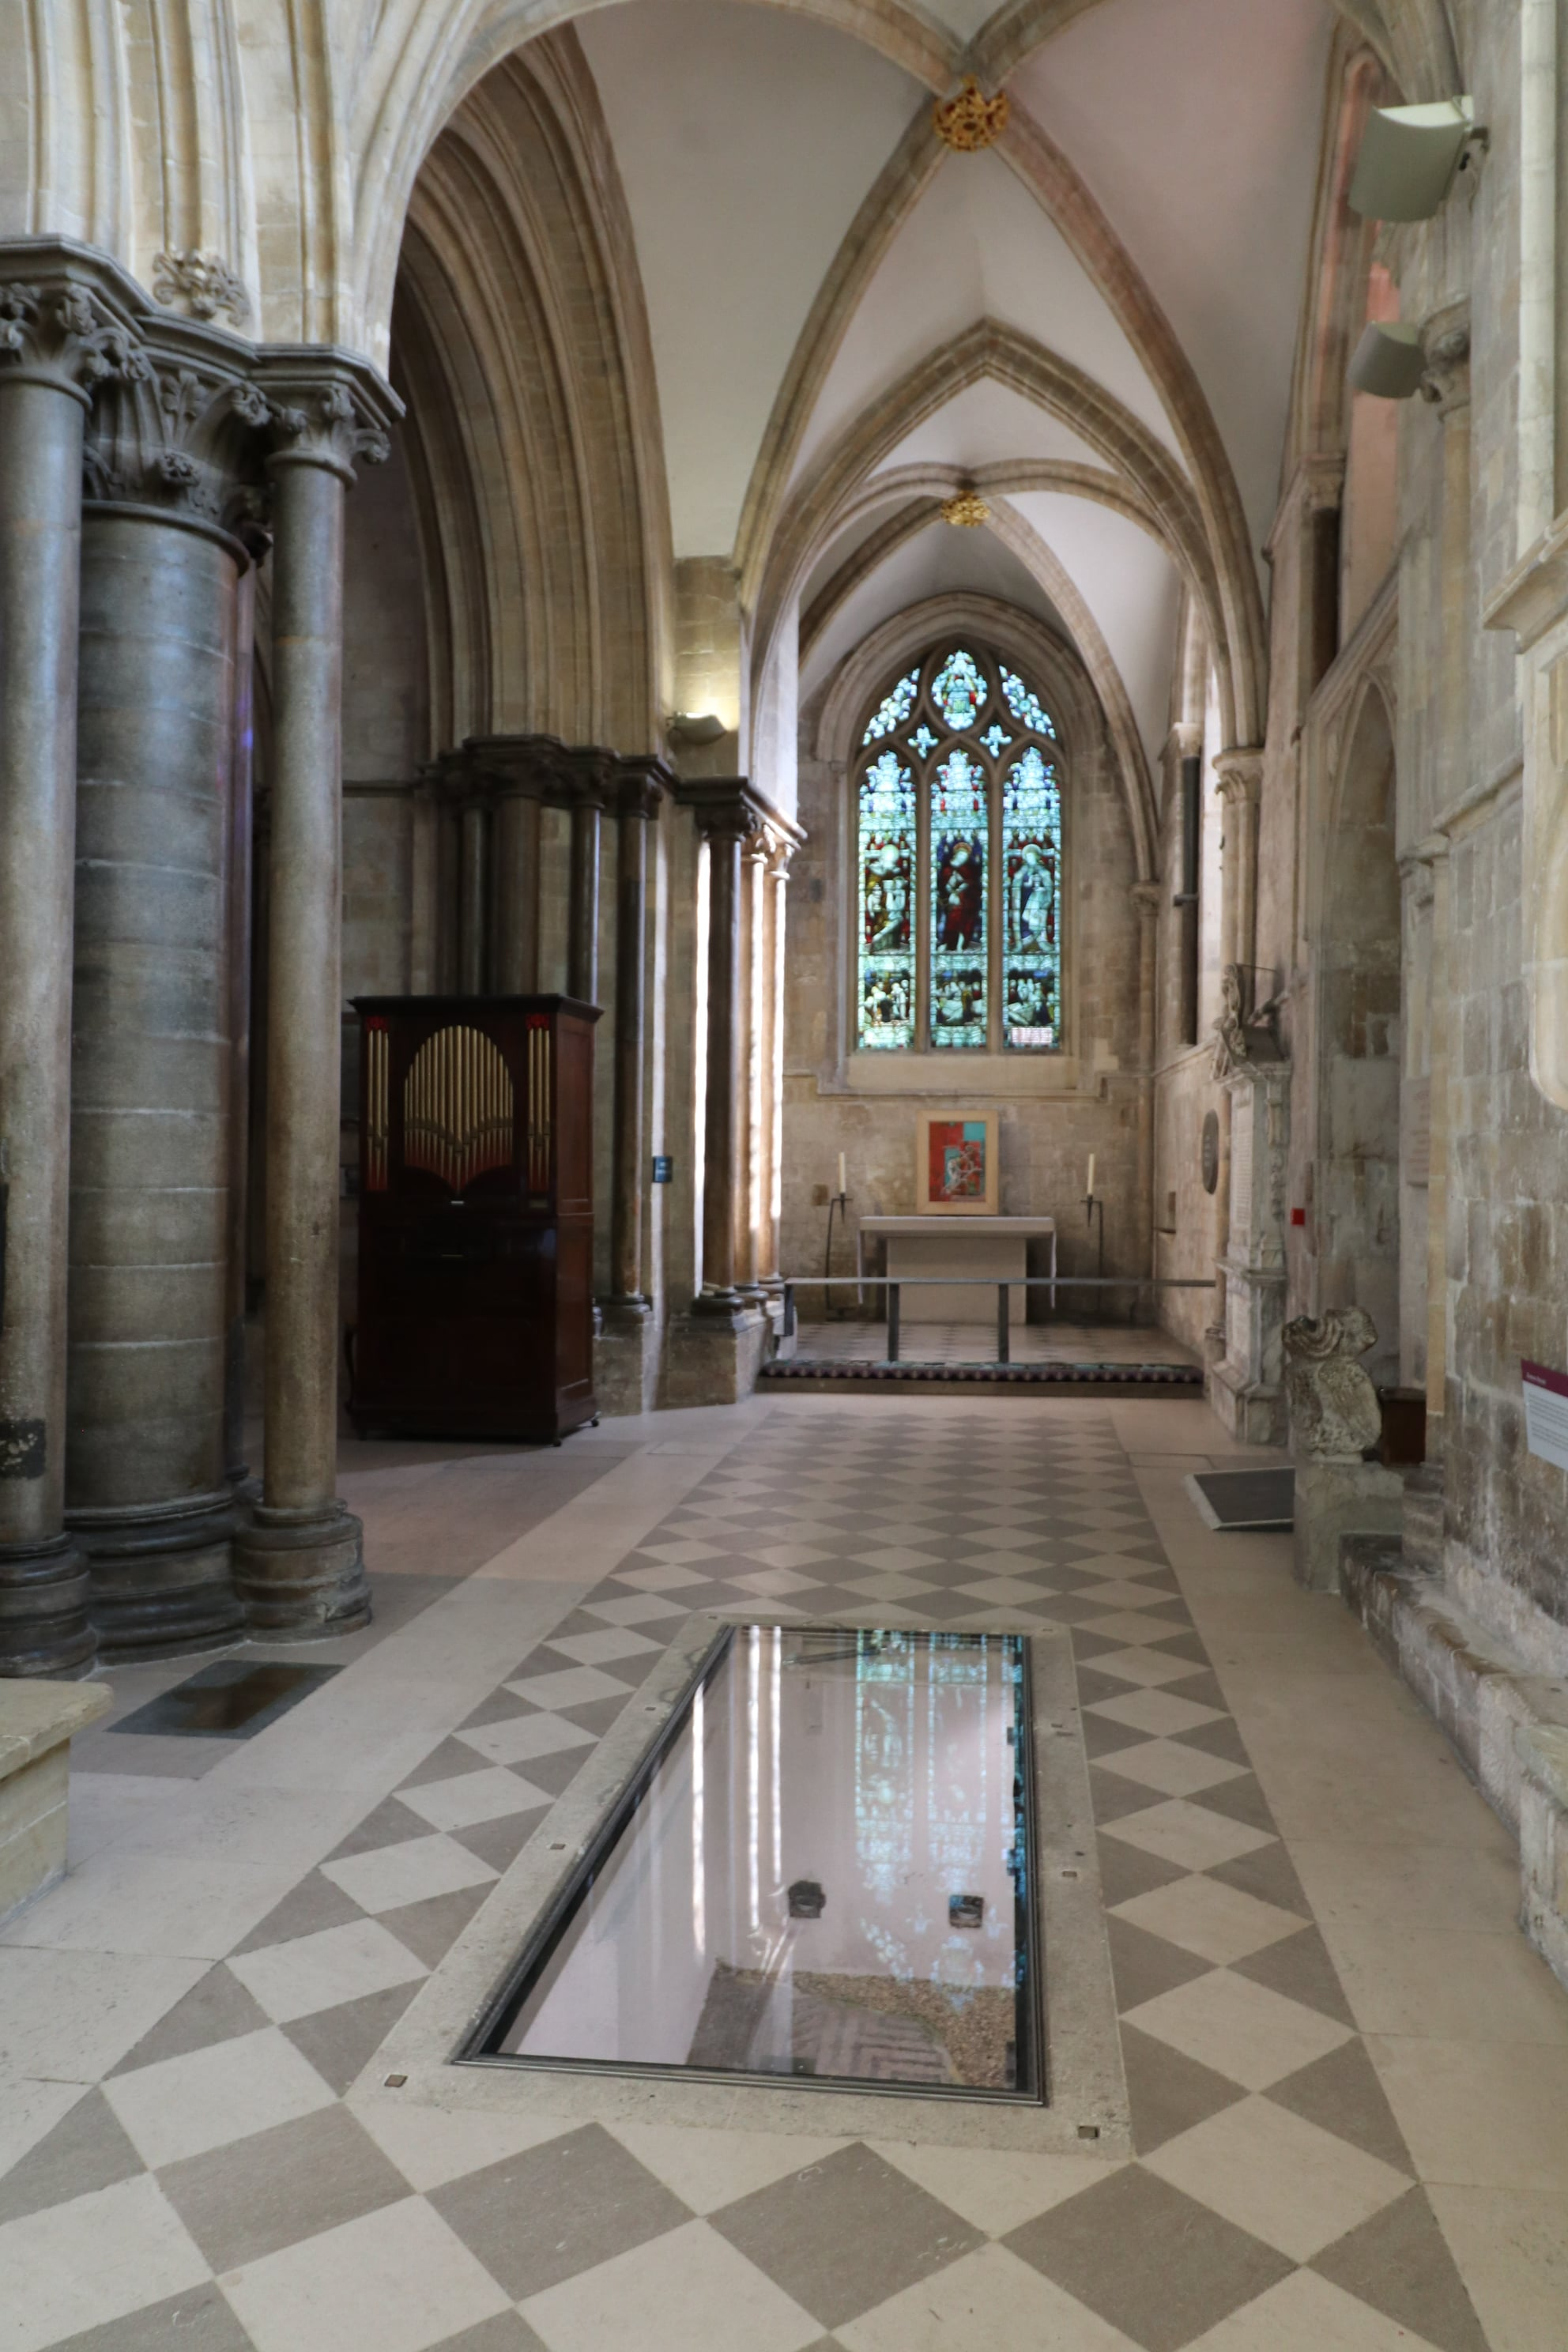 Glass floor panel to display Roman mosaic in chichester cathedral